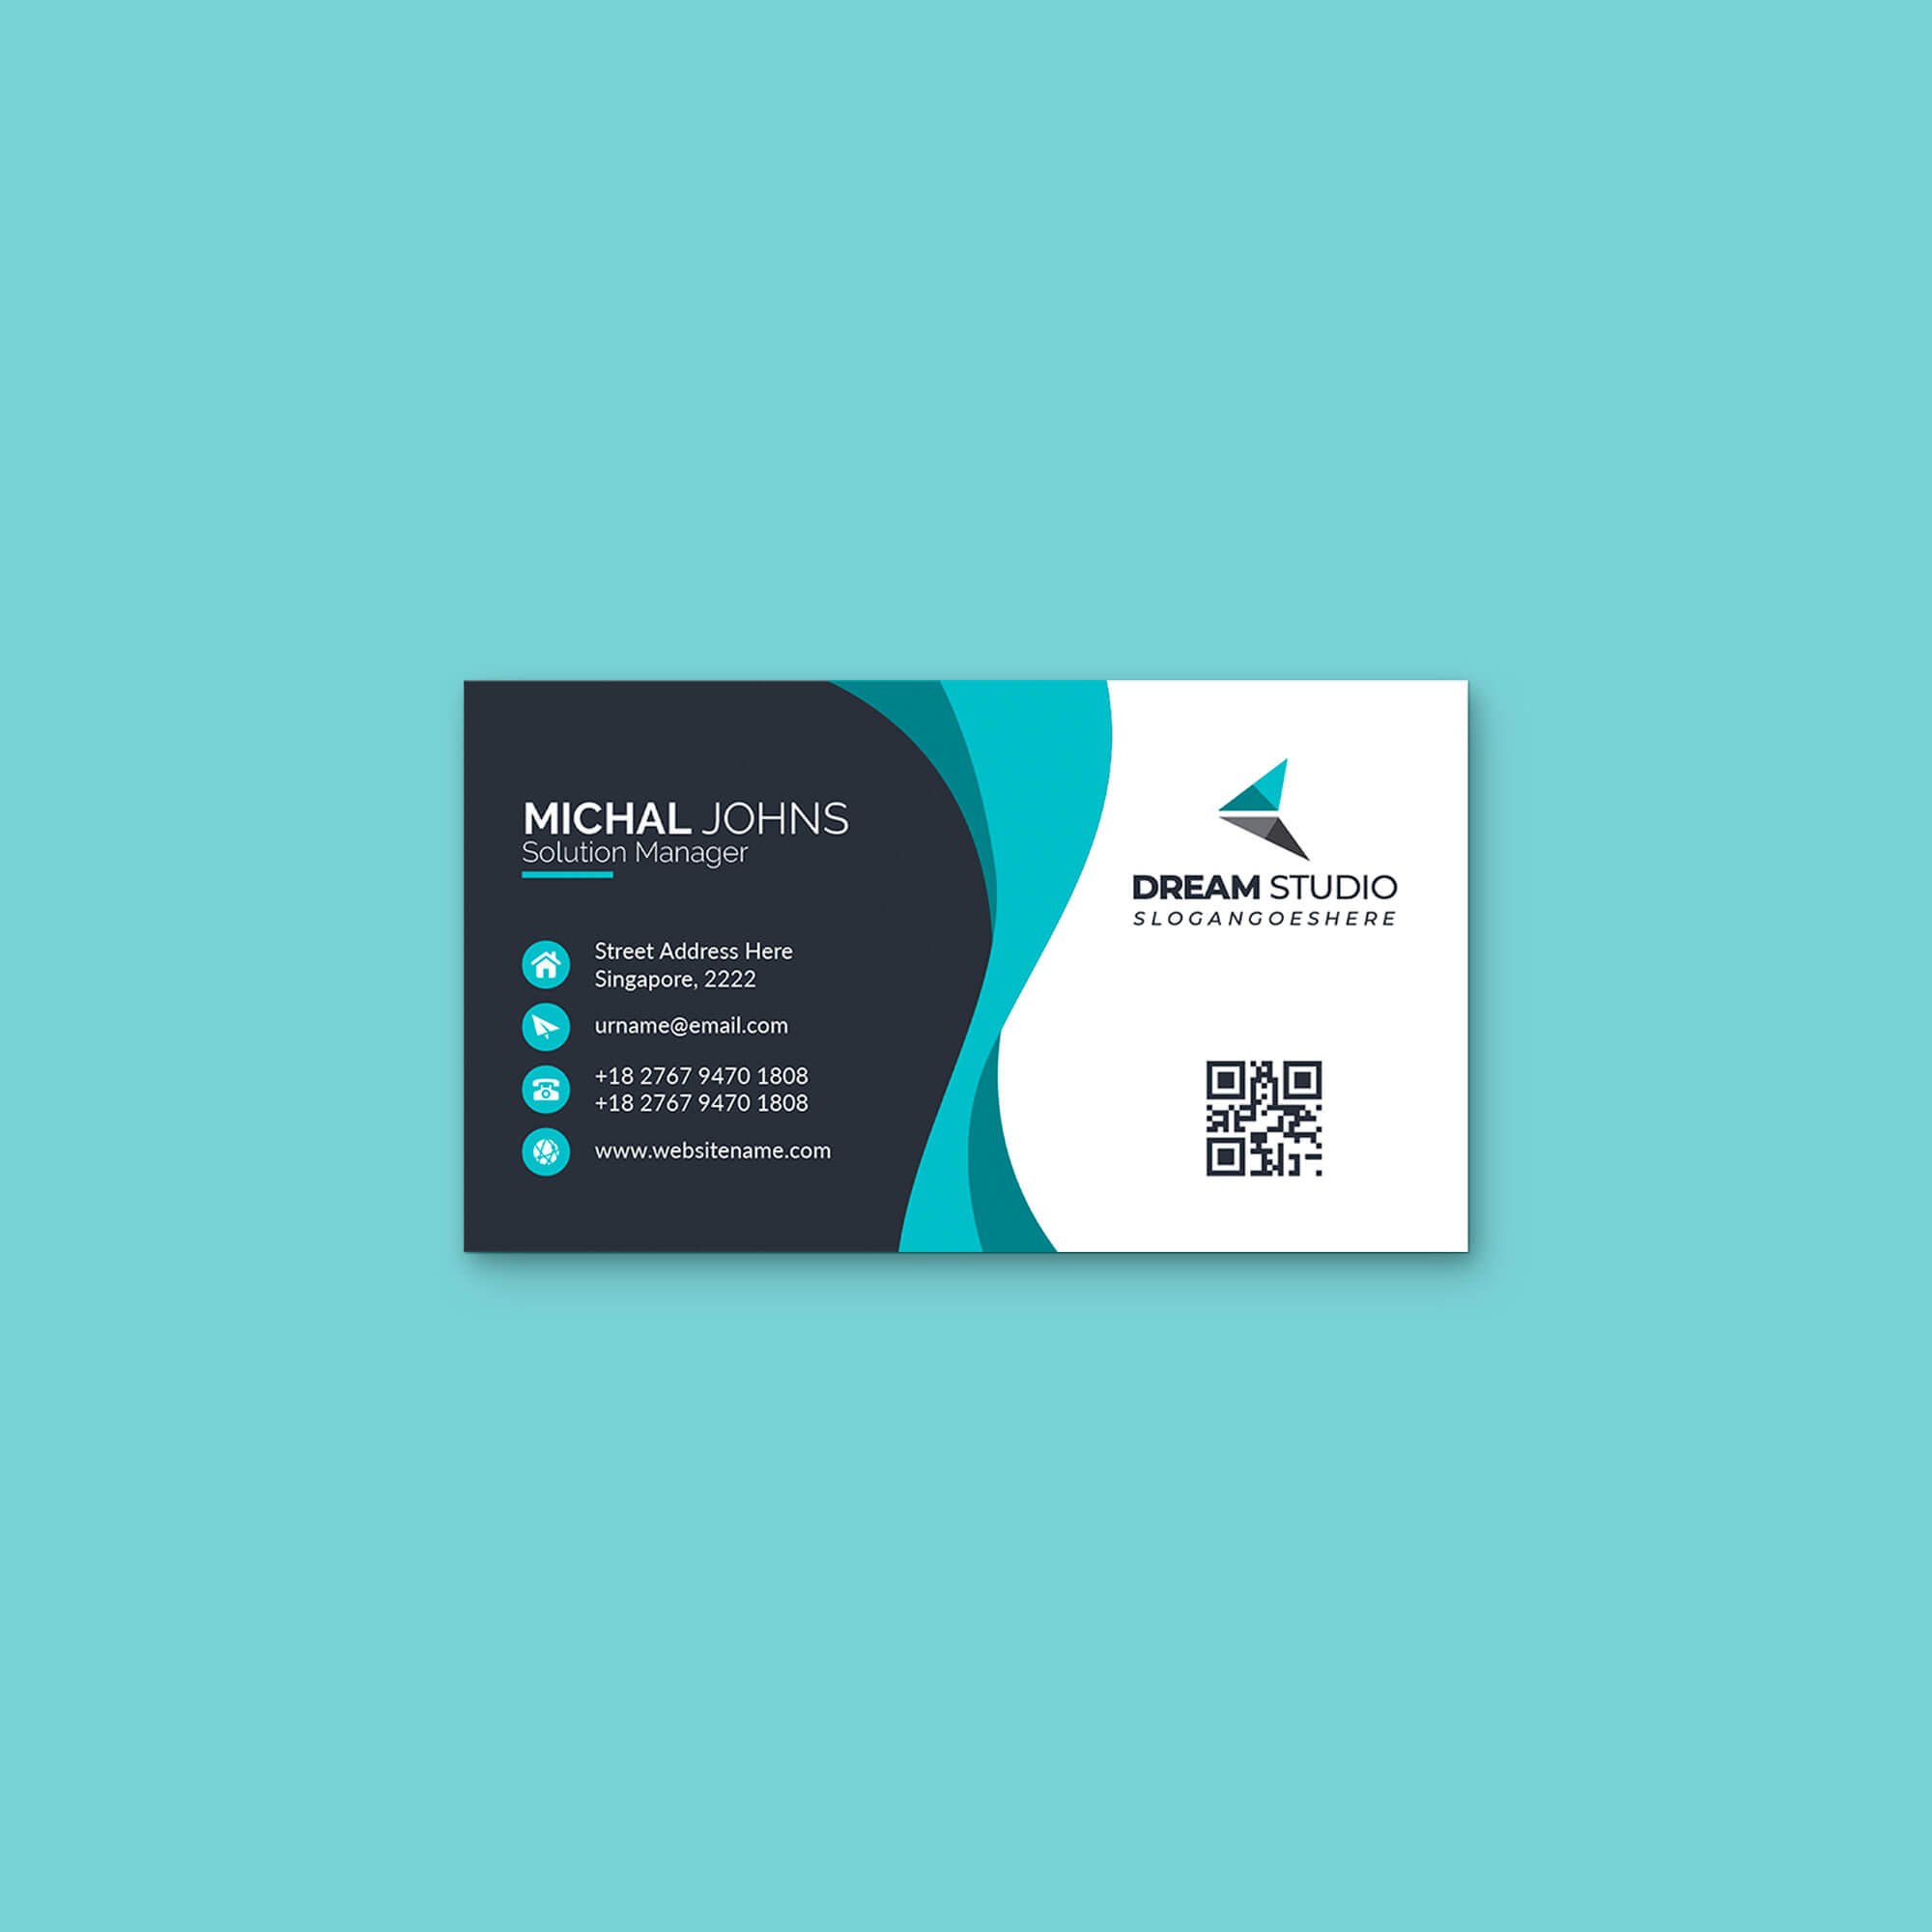 Design Free Personal Card Mockup PSD Template